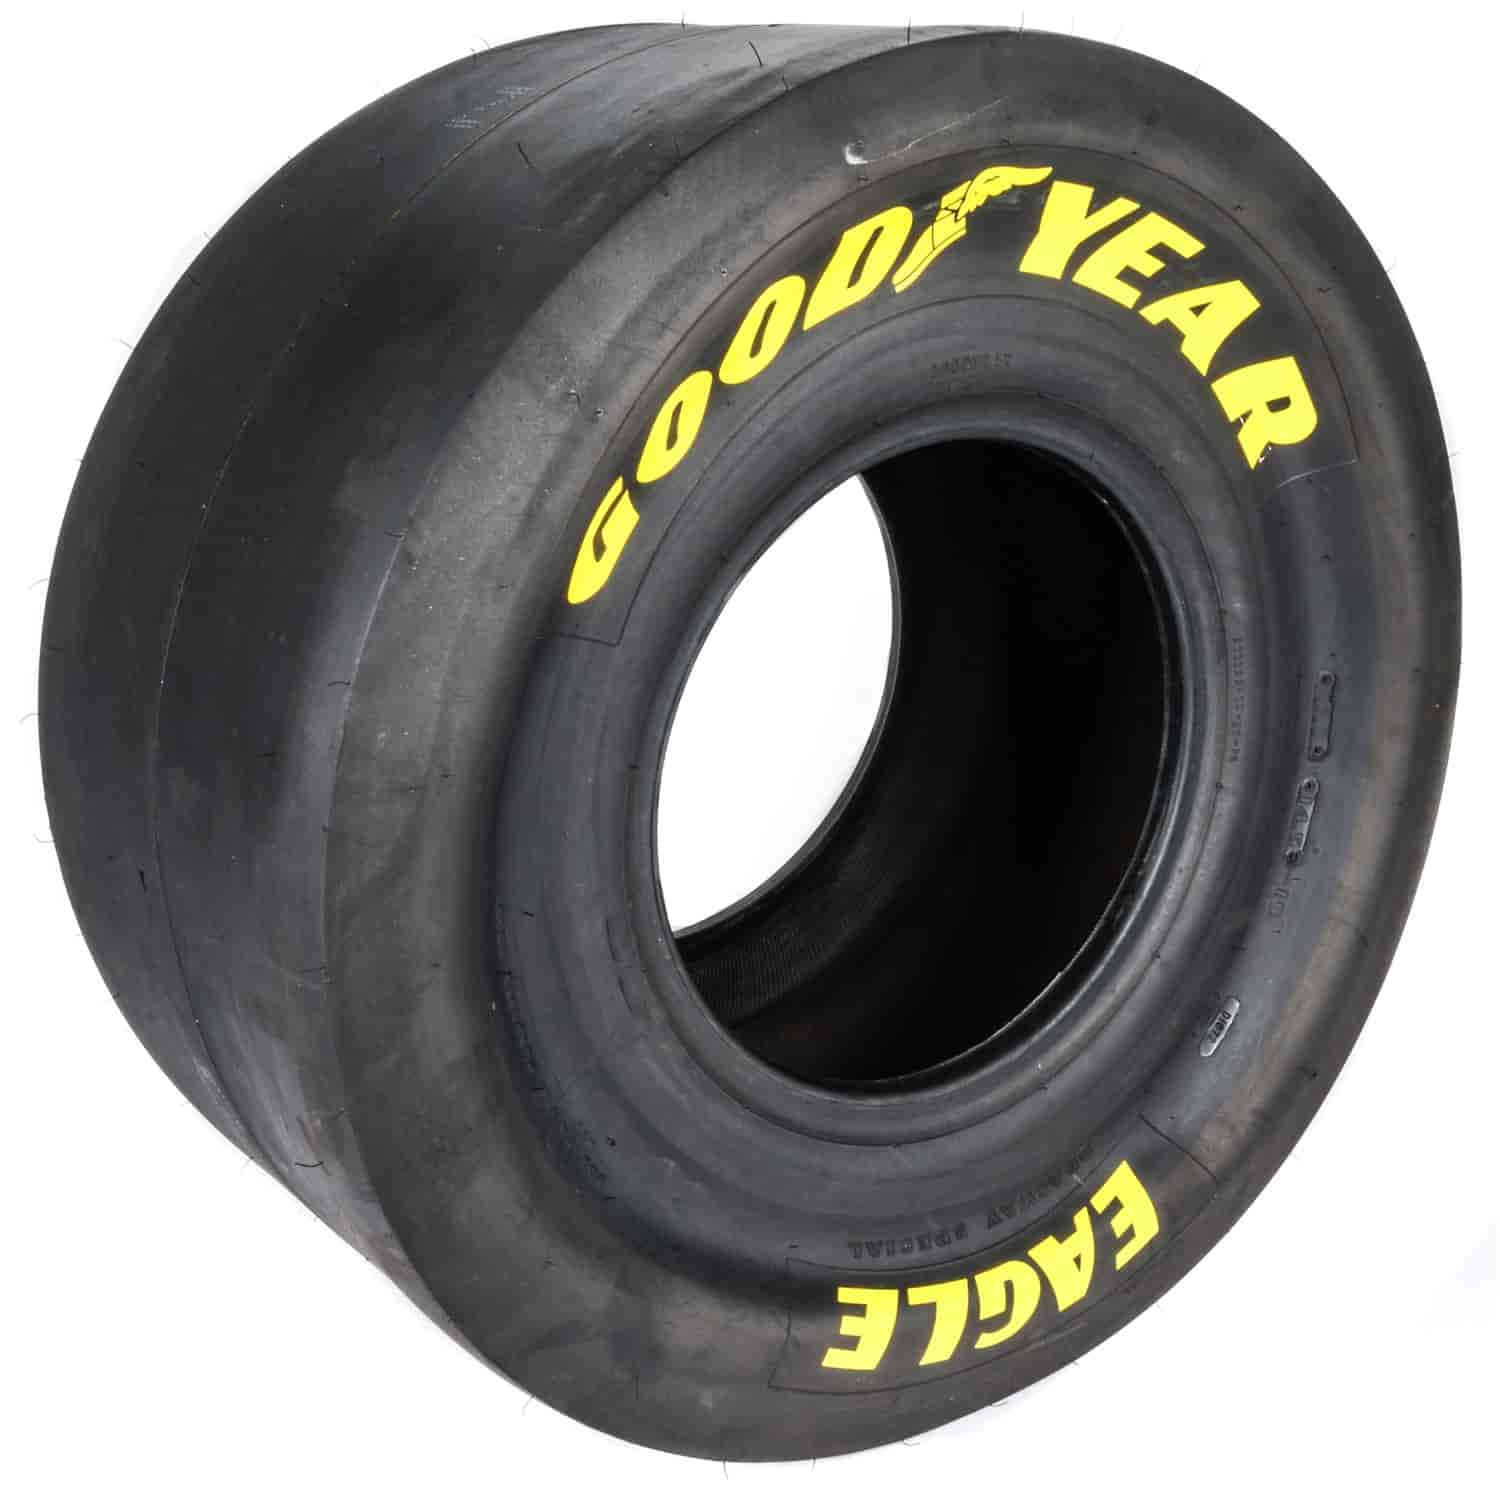 Goodyear D1672 - Goodyear Eagle Drag Slicks